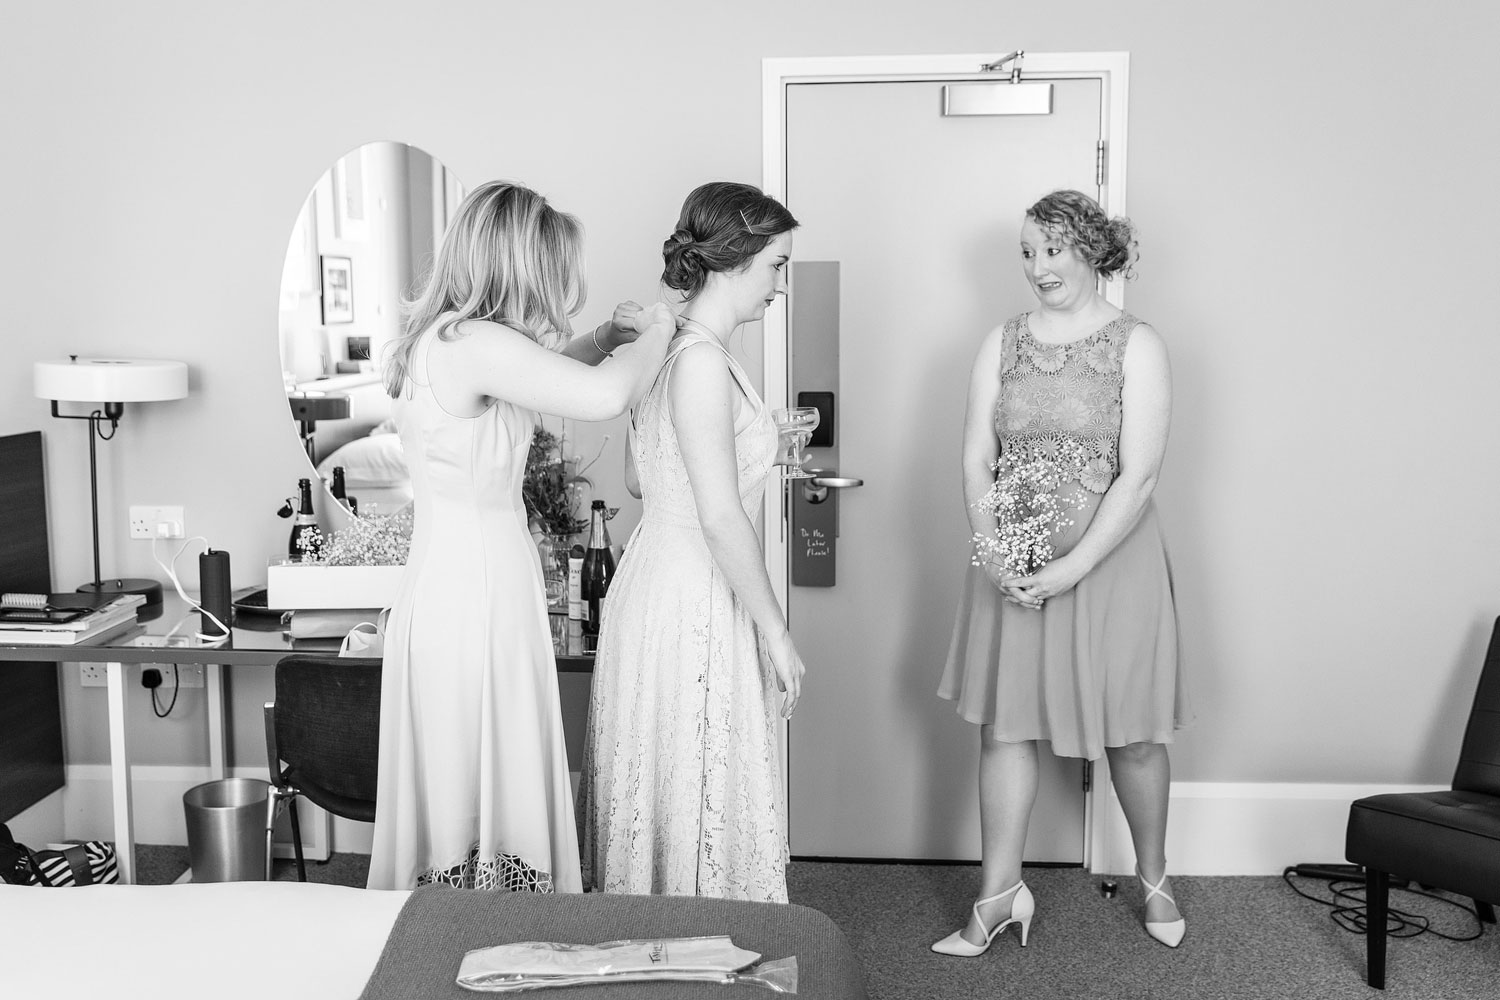 bridal preparation before a wedding at the Laslett Hotel in Notting Hill Gate - London wedding photographer